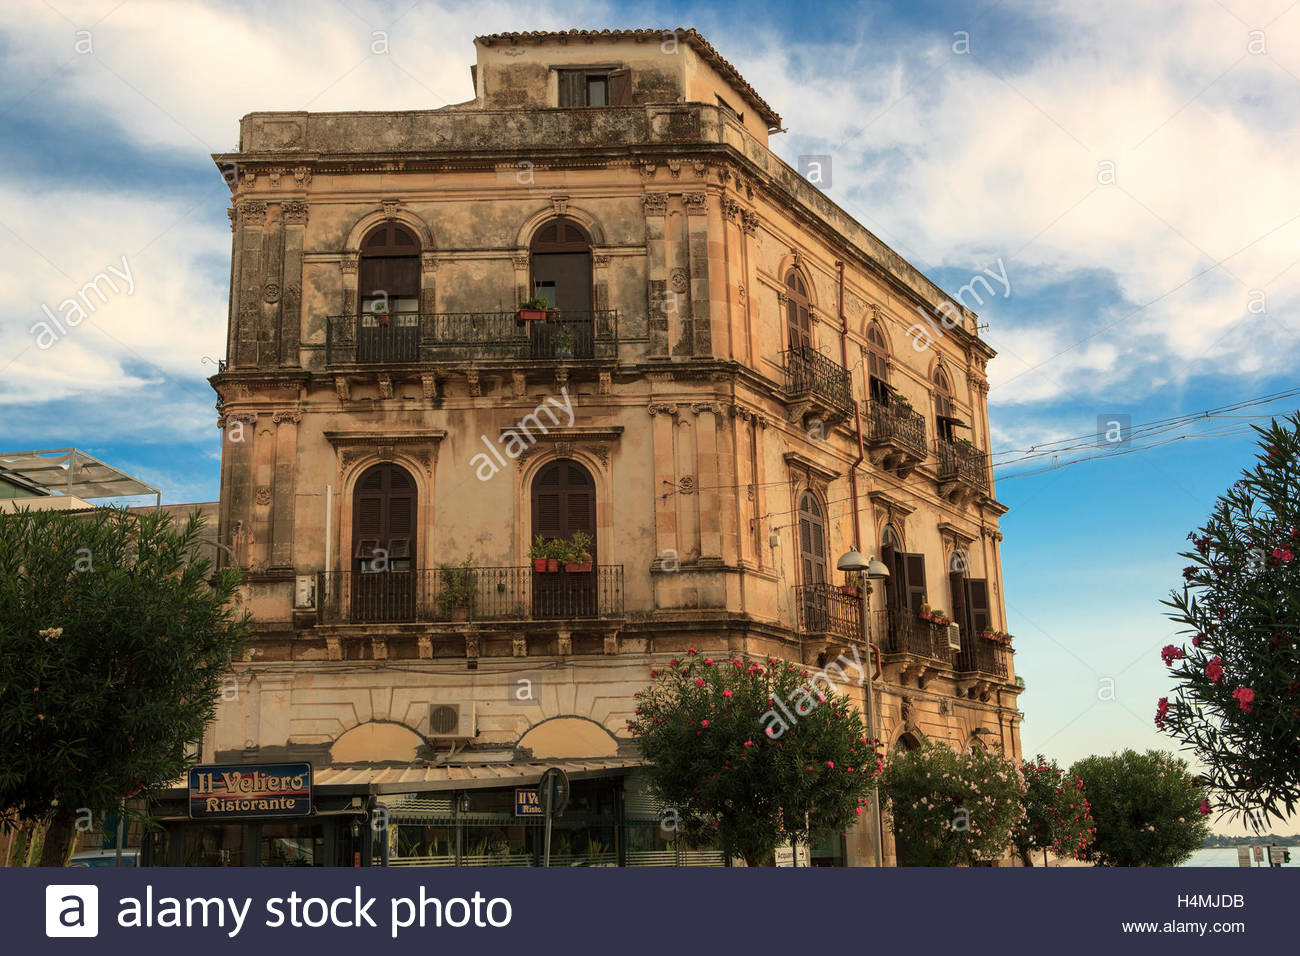 A centuries old, ornate limestone and marble building with arched windows and wrought iron balconies, in Syracuse, Stock Photo